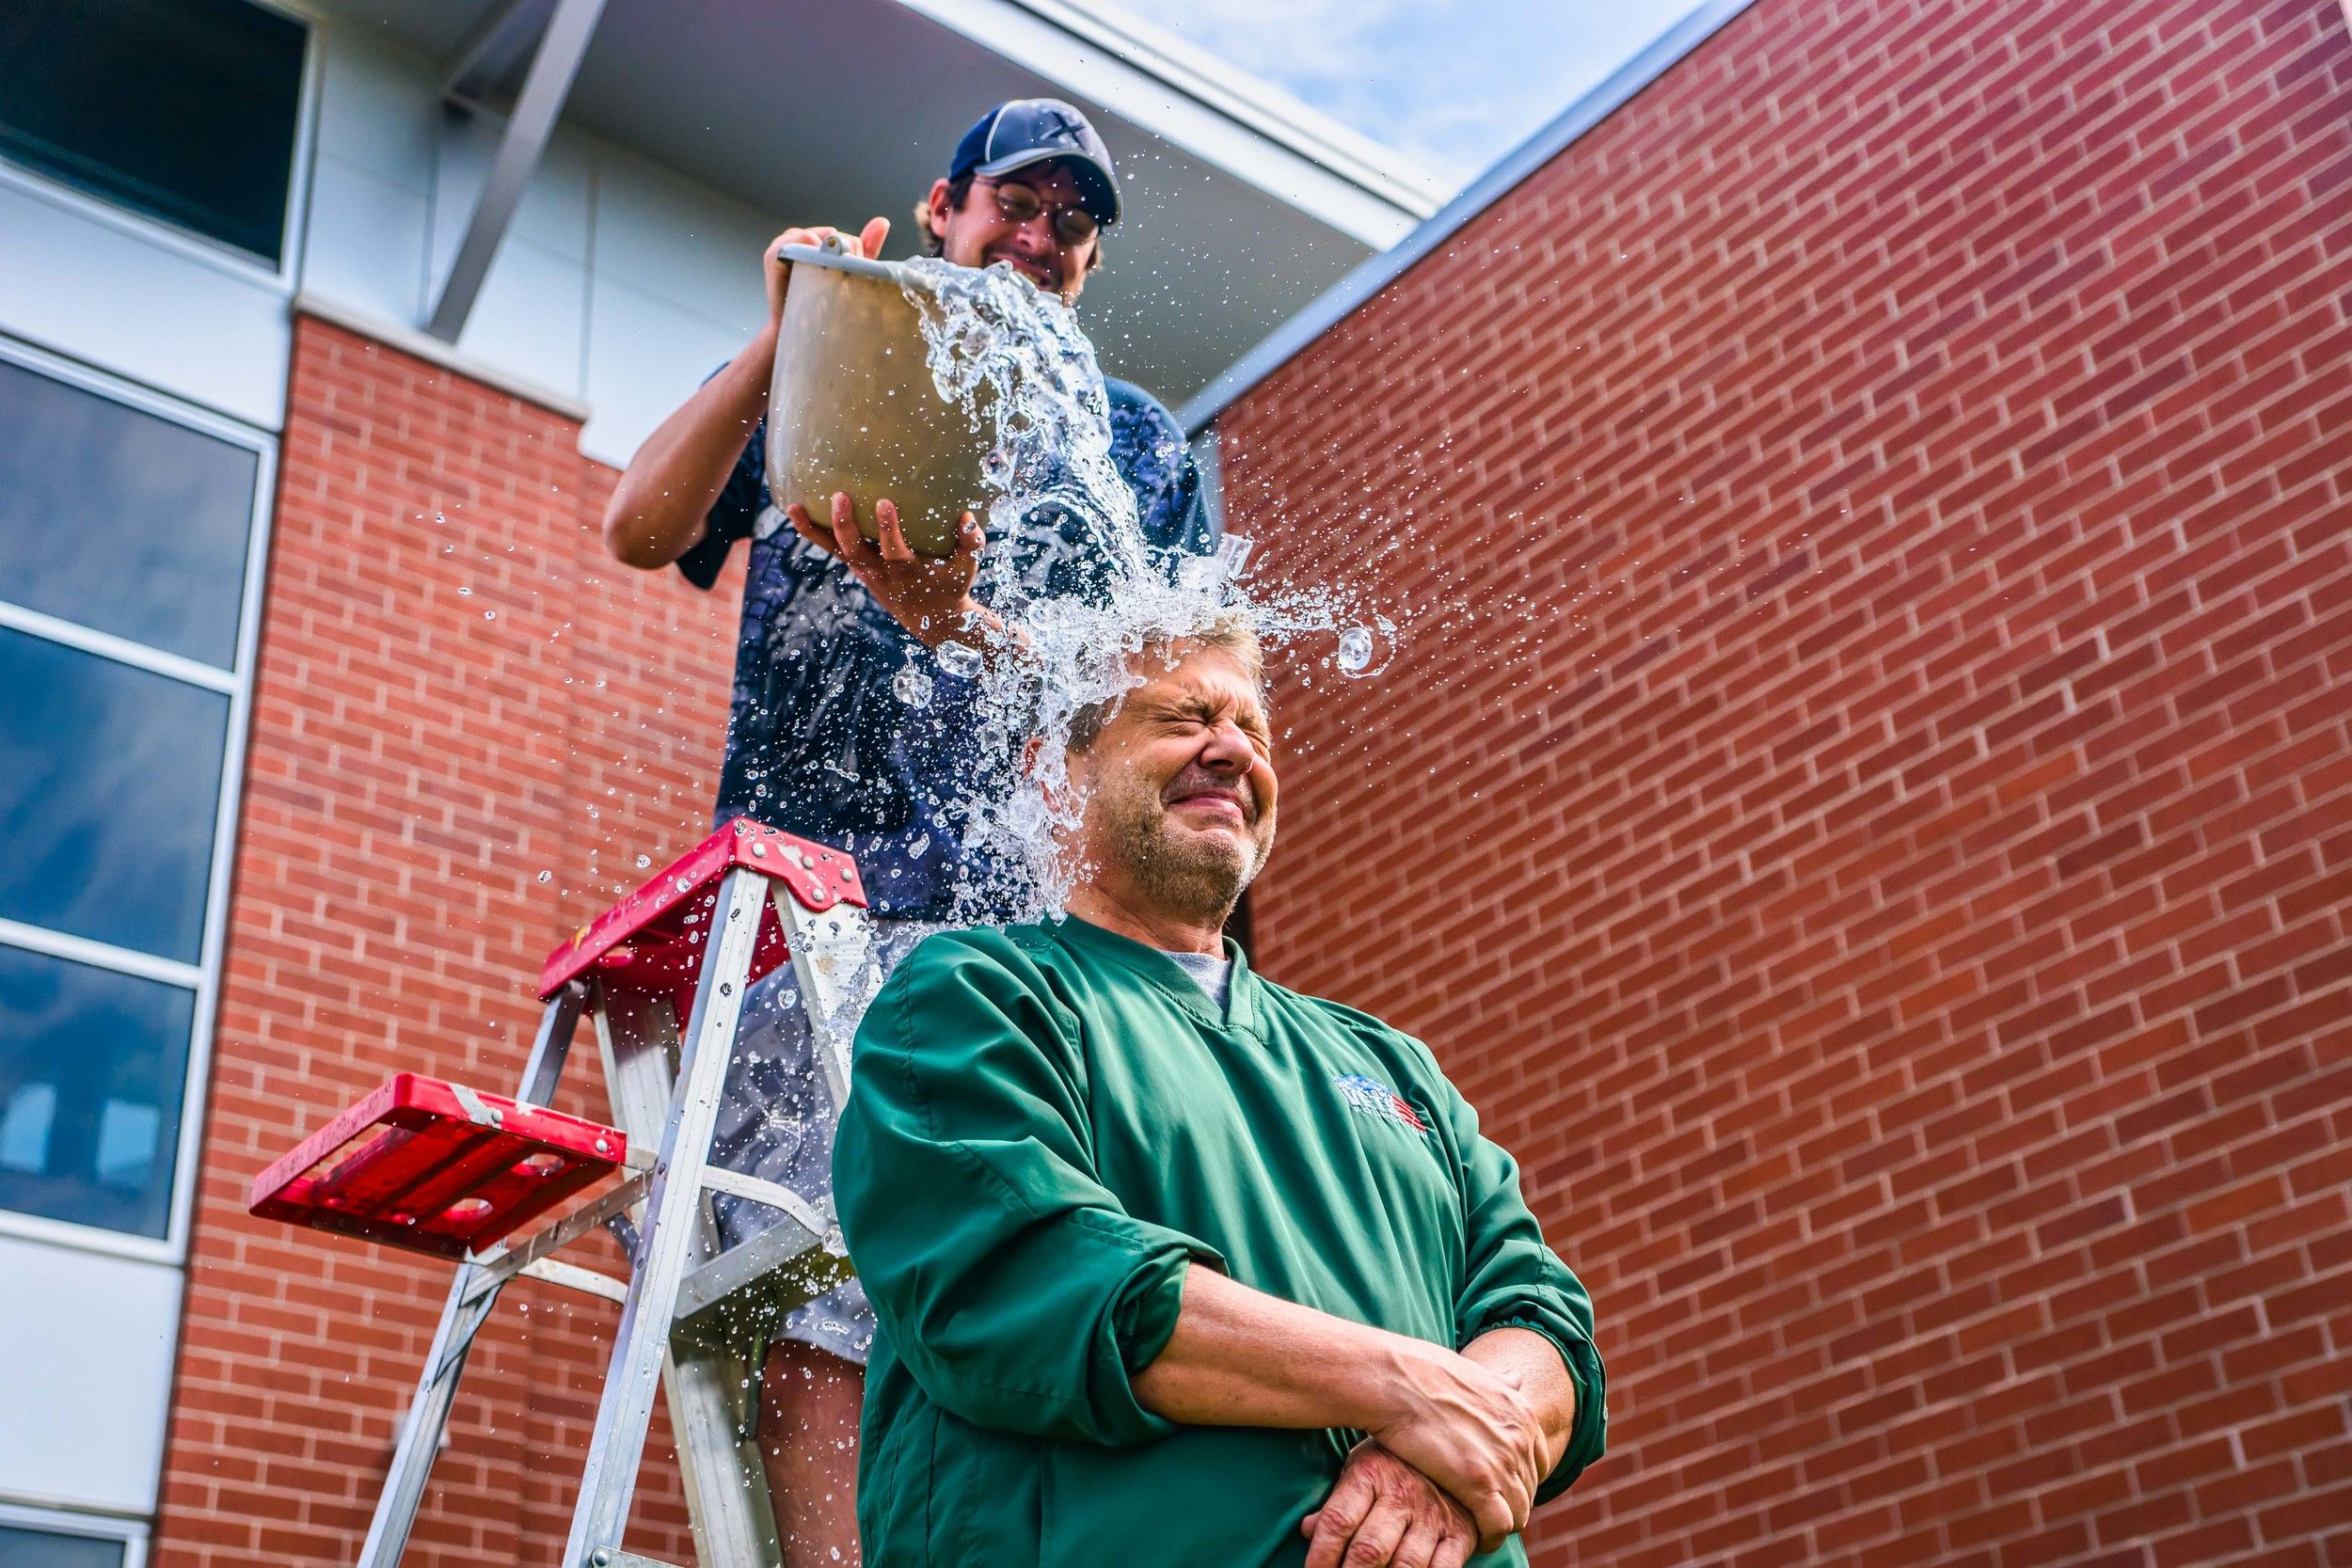 The ALS Ice Bucket Challenge is old news by now, but it's lodged in everyone's memories as one of the most ...